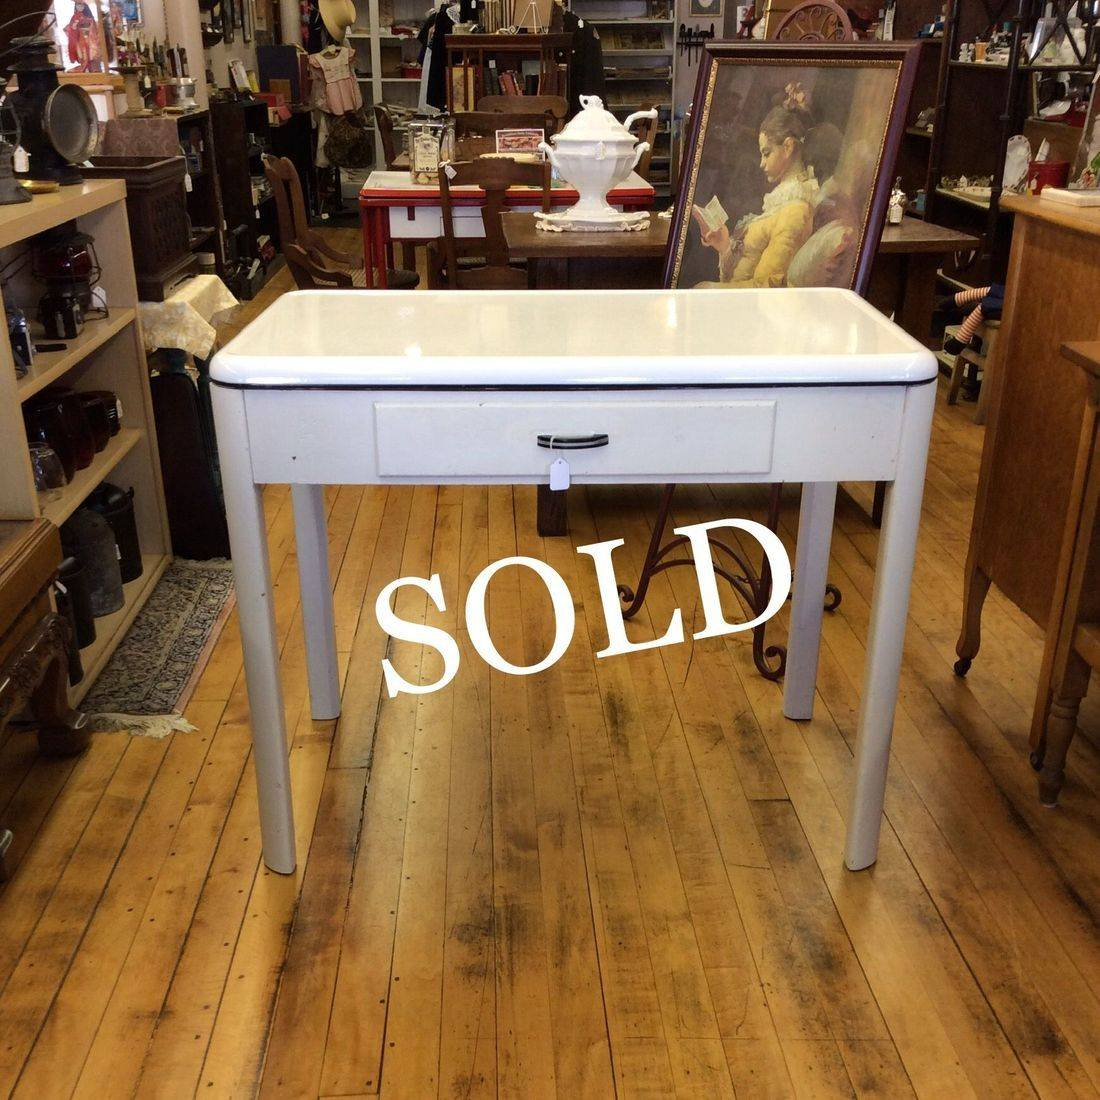 "1937 Crysteel Enamel Top Kitchen/Work Table w/Drawer 39-1/2""W x 26-1/2""D x 30""H.  $75.00"